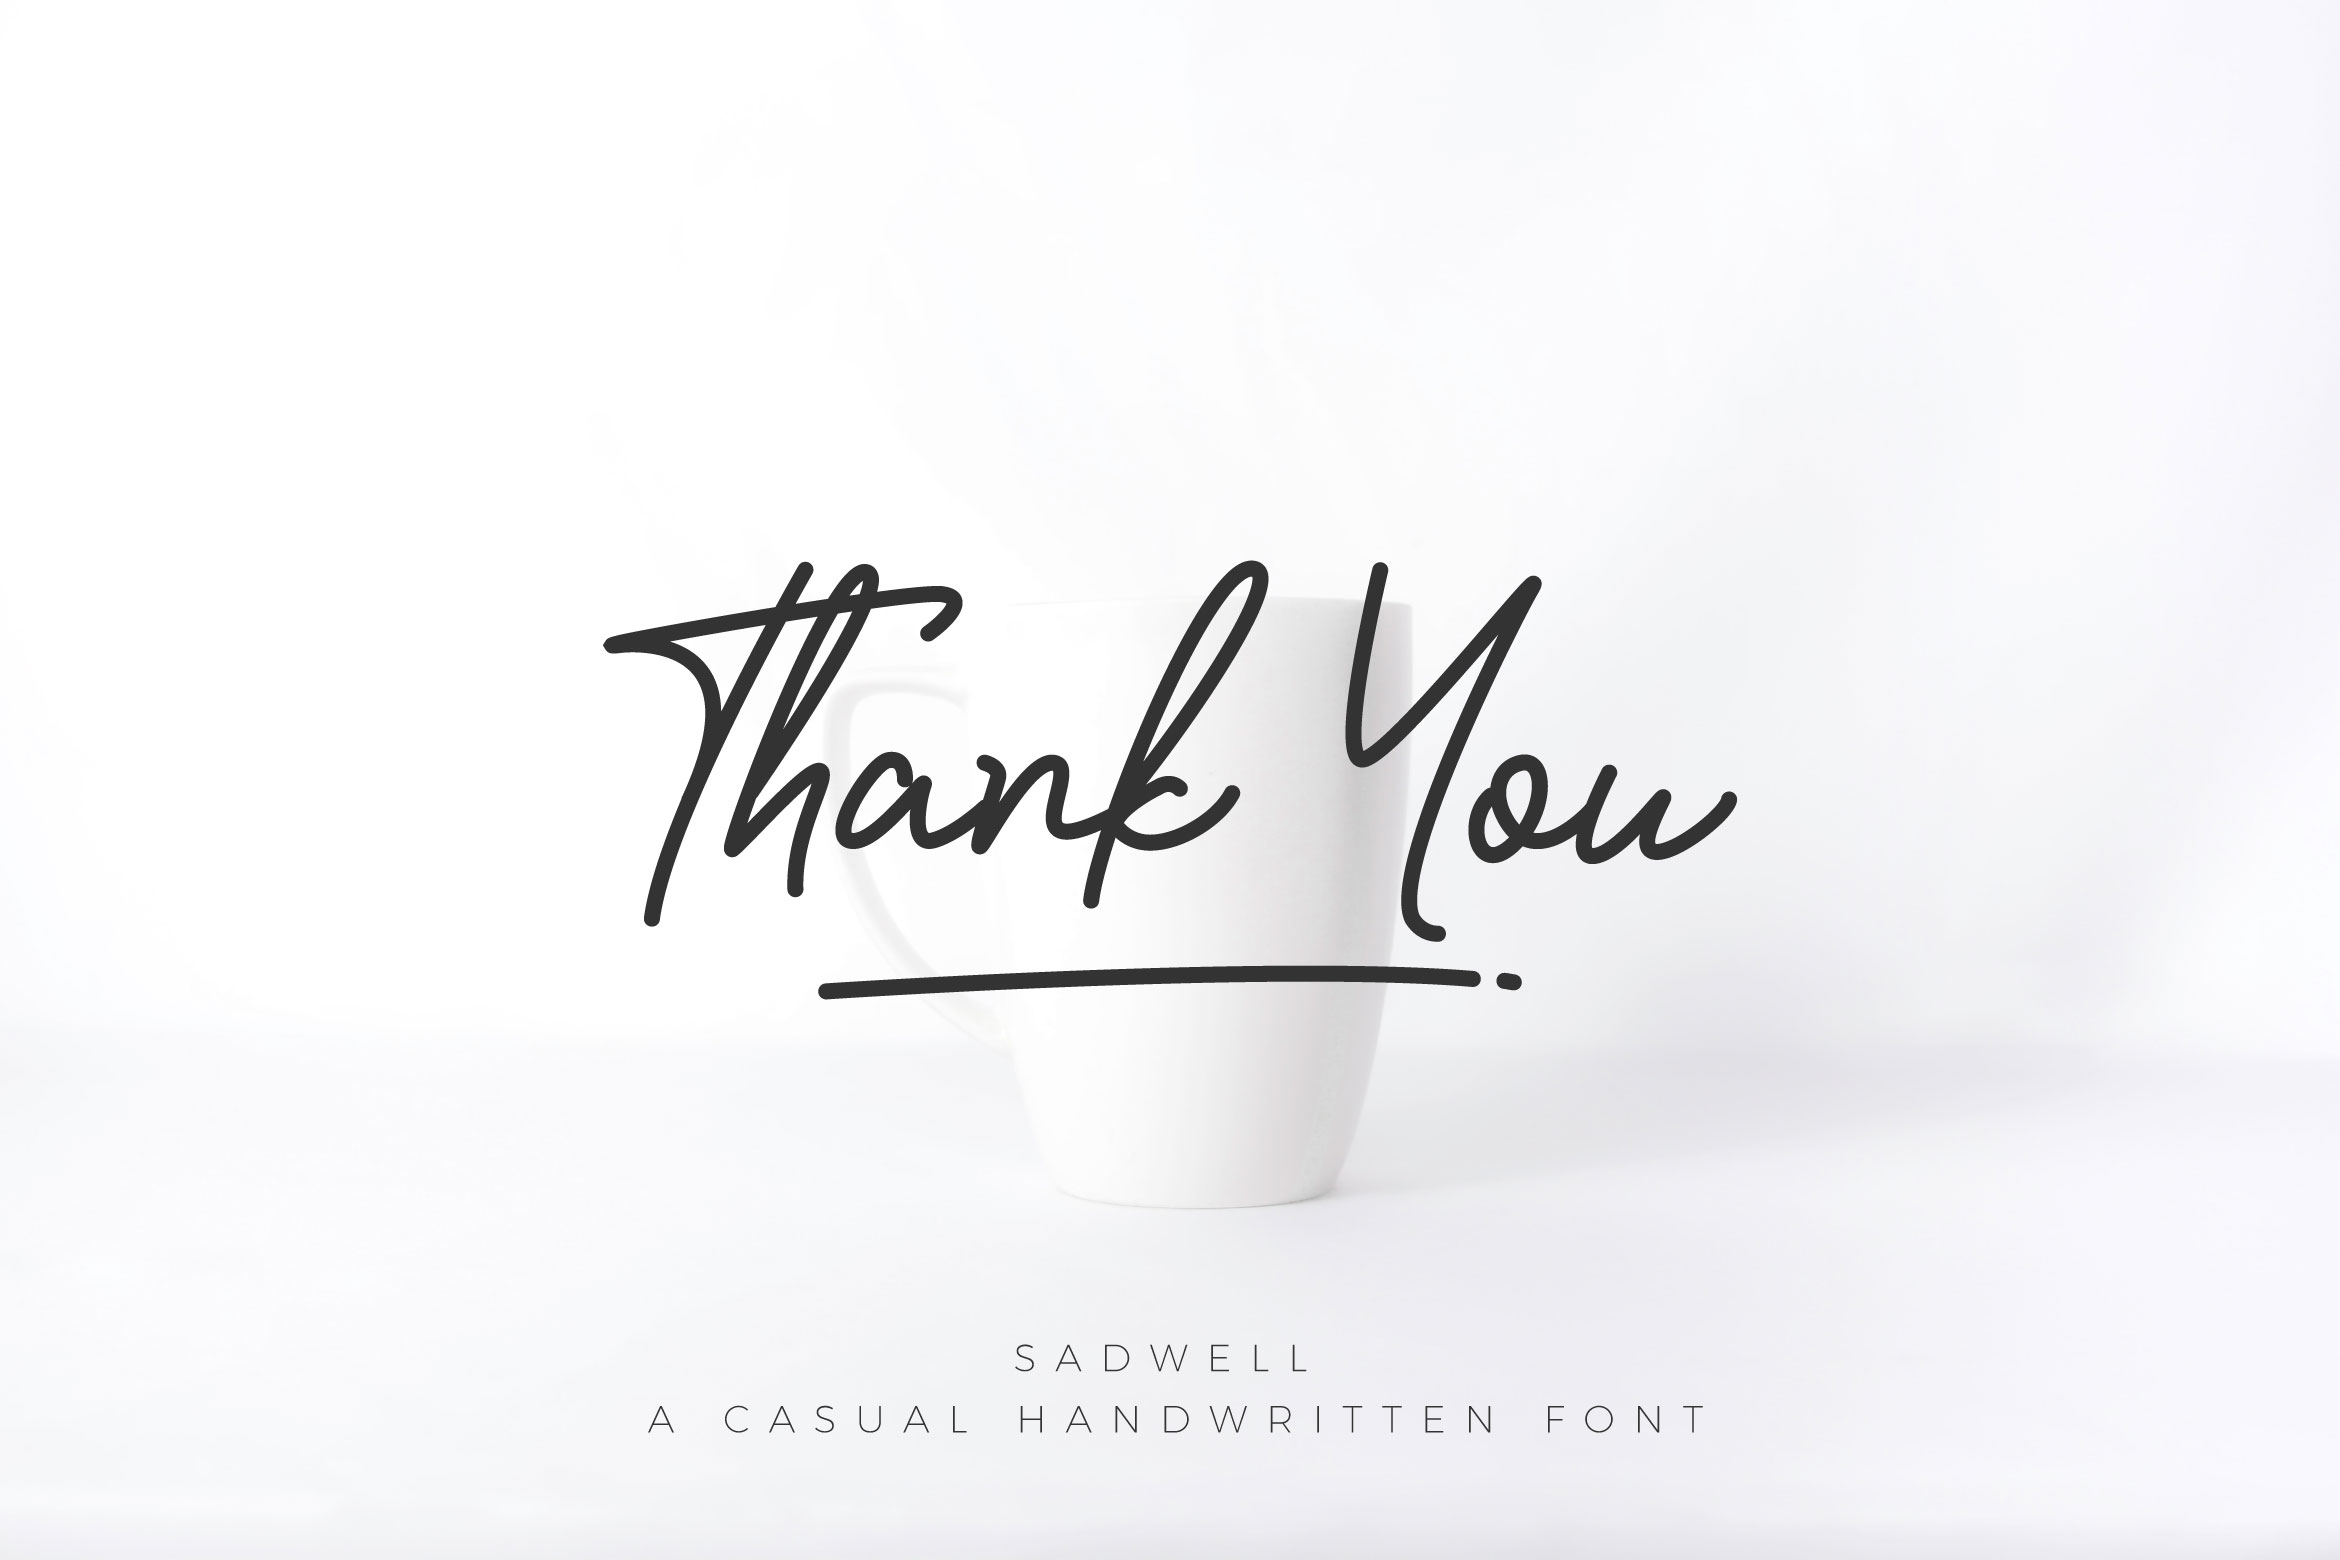 Sadwell - A Casual Handwritten Font example image 12